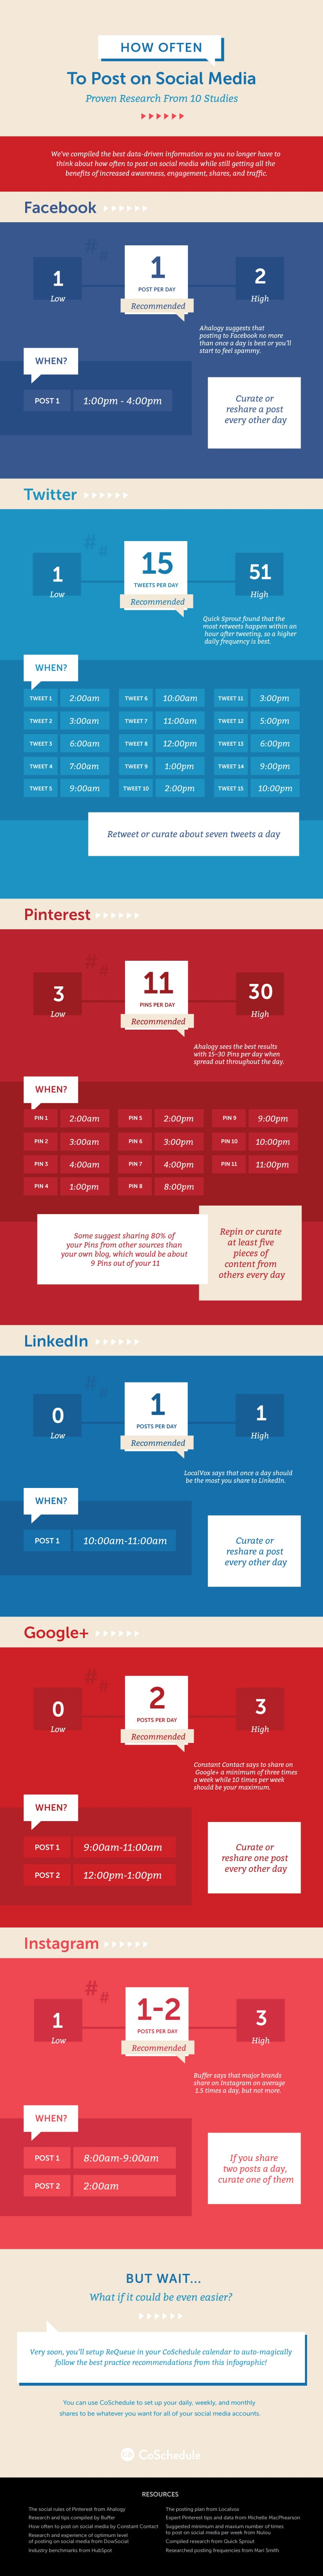 When & How Often You Should Post on Each Social Network [Infographic] | Social Media Today